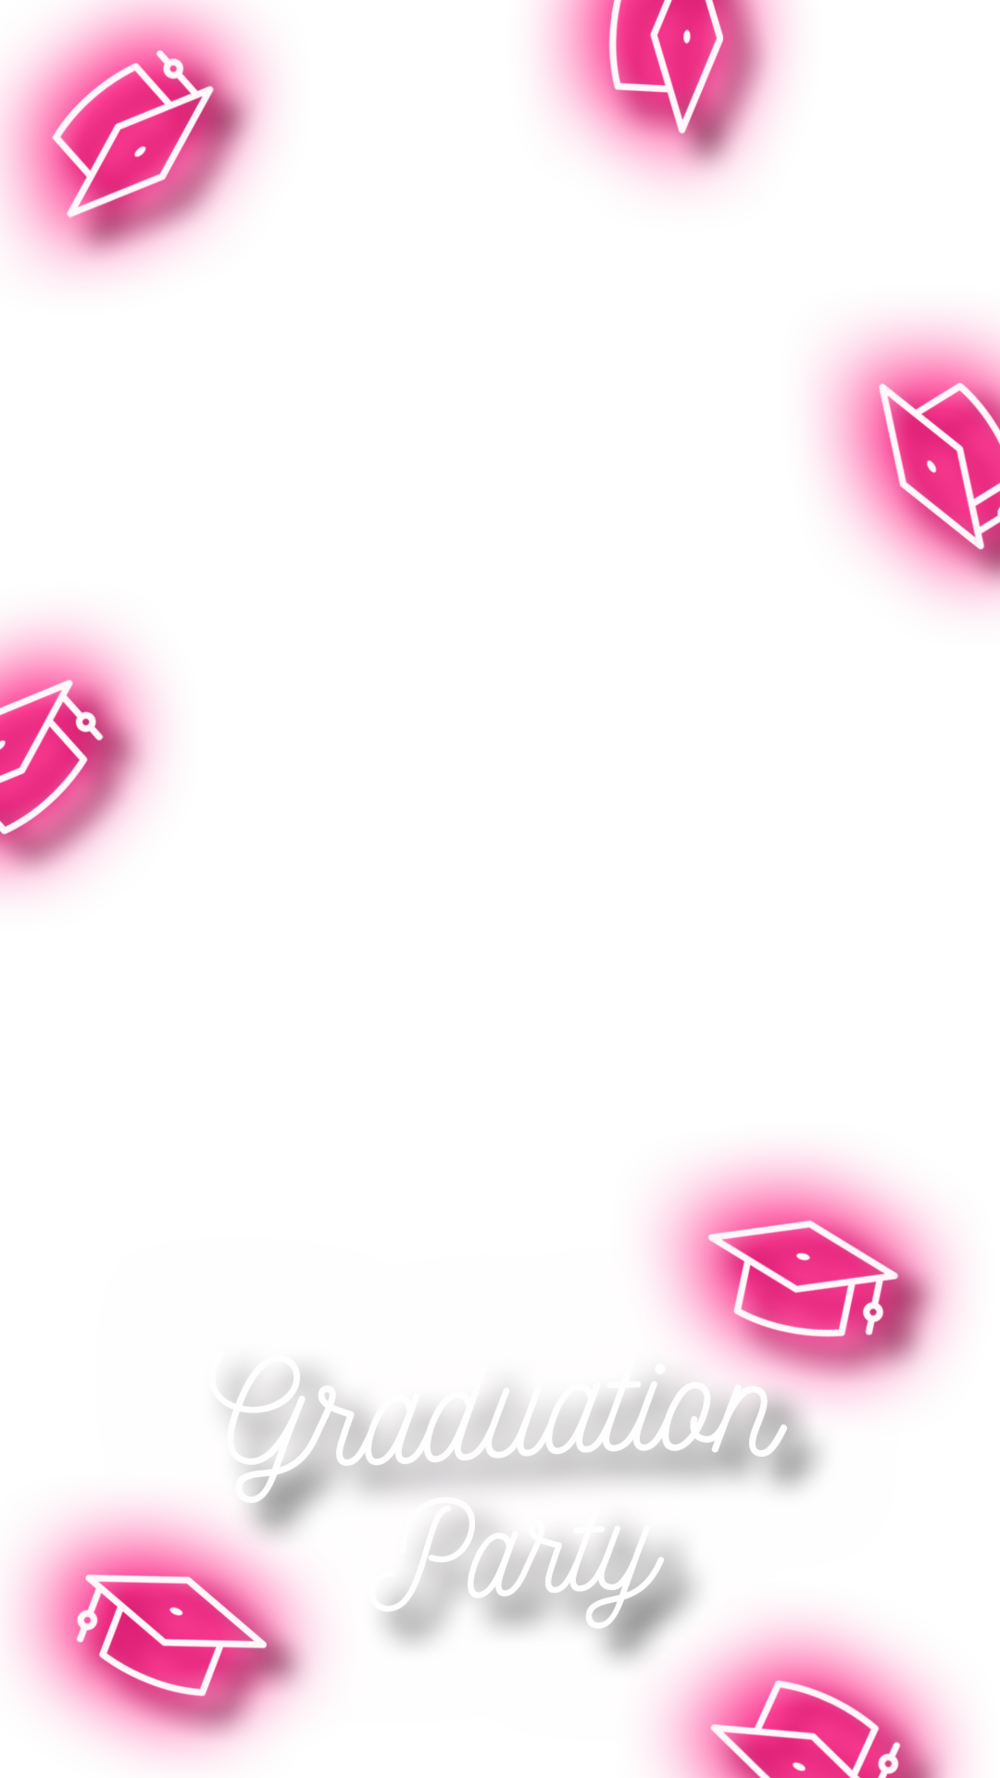 Neon_GraduationParty_SnapchatGeofilter.png